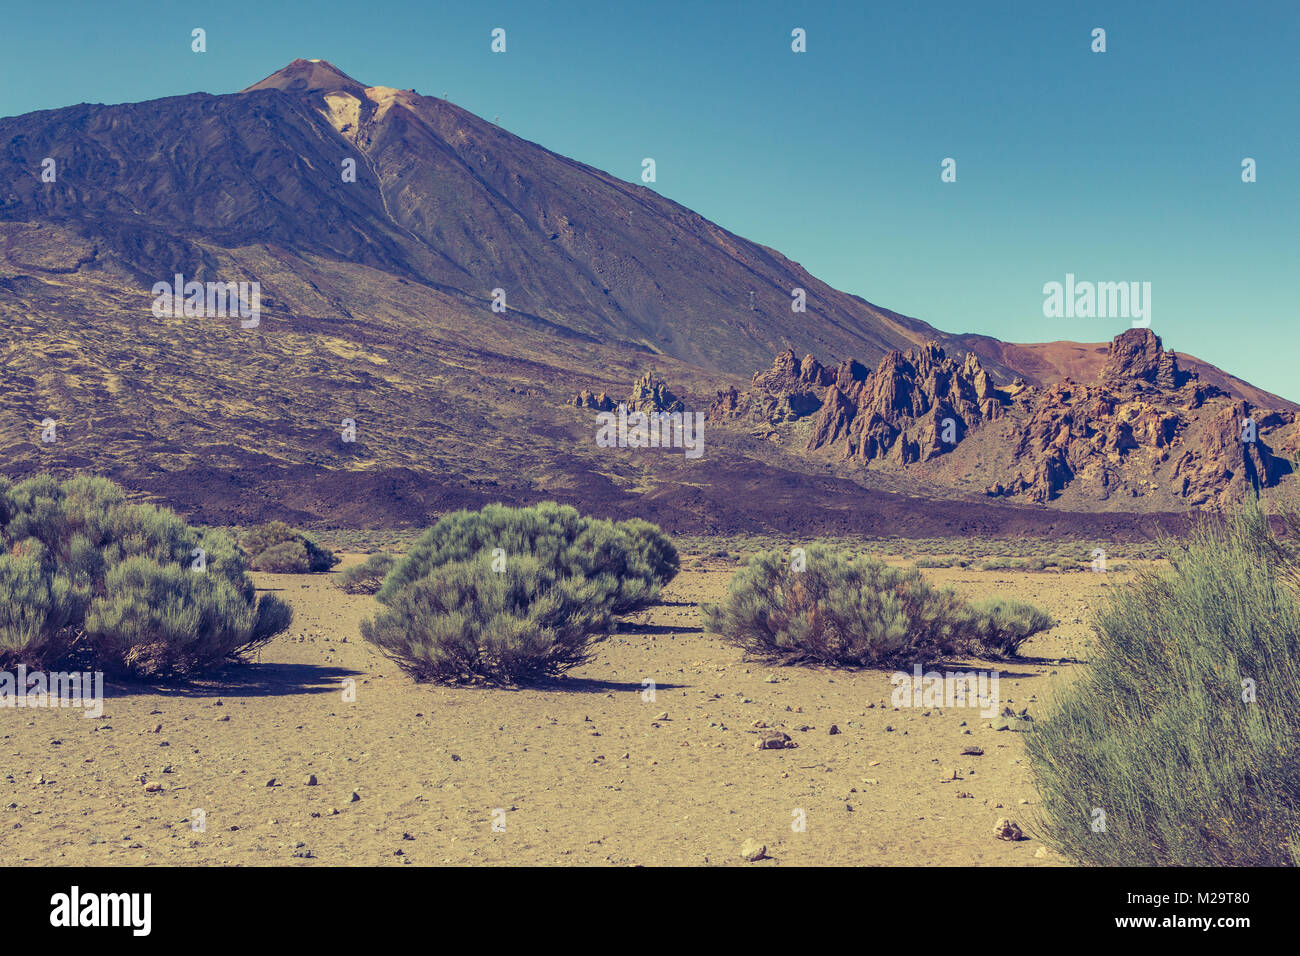 pice de teide view with green bushes in the foreground - Stock Image